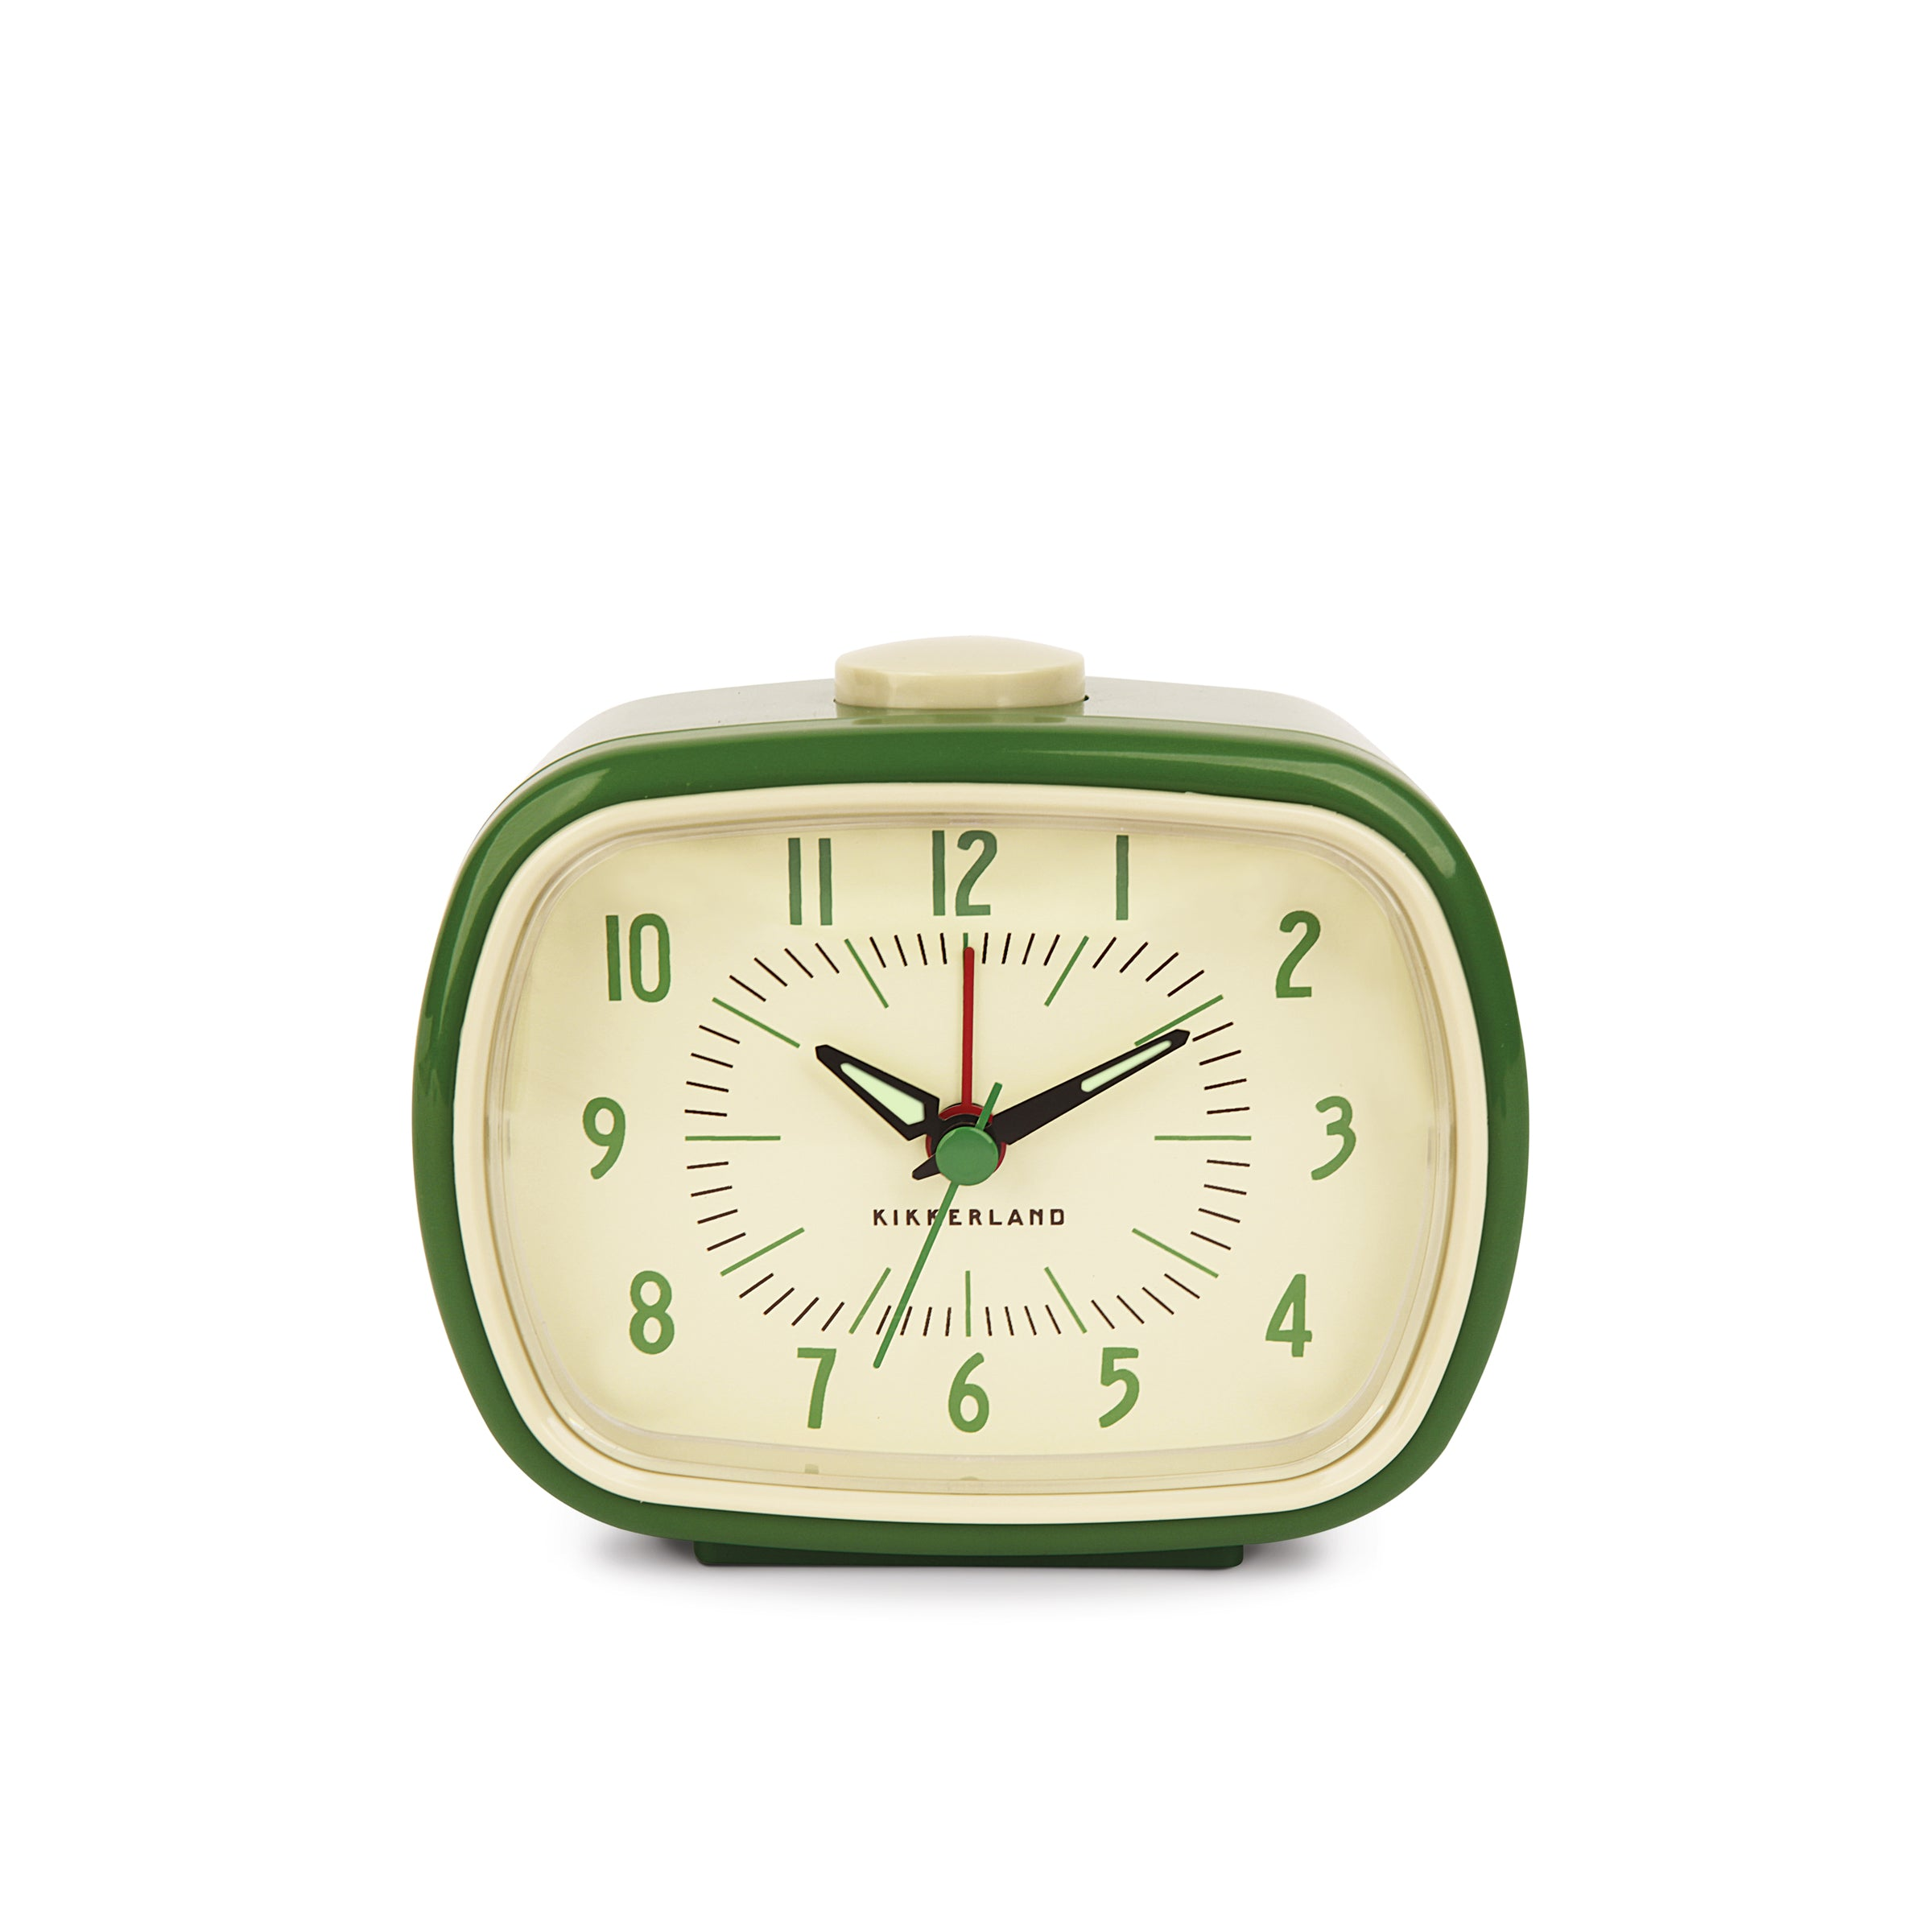 Retro Alarm Clock + Green – Kikkerland Design Inc